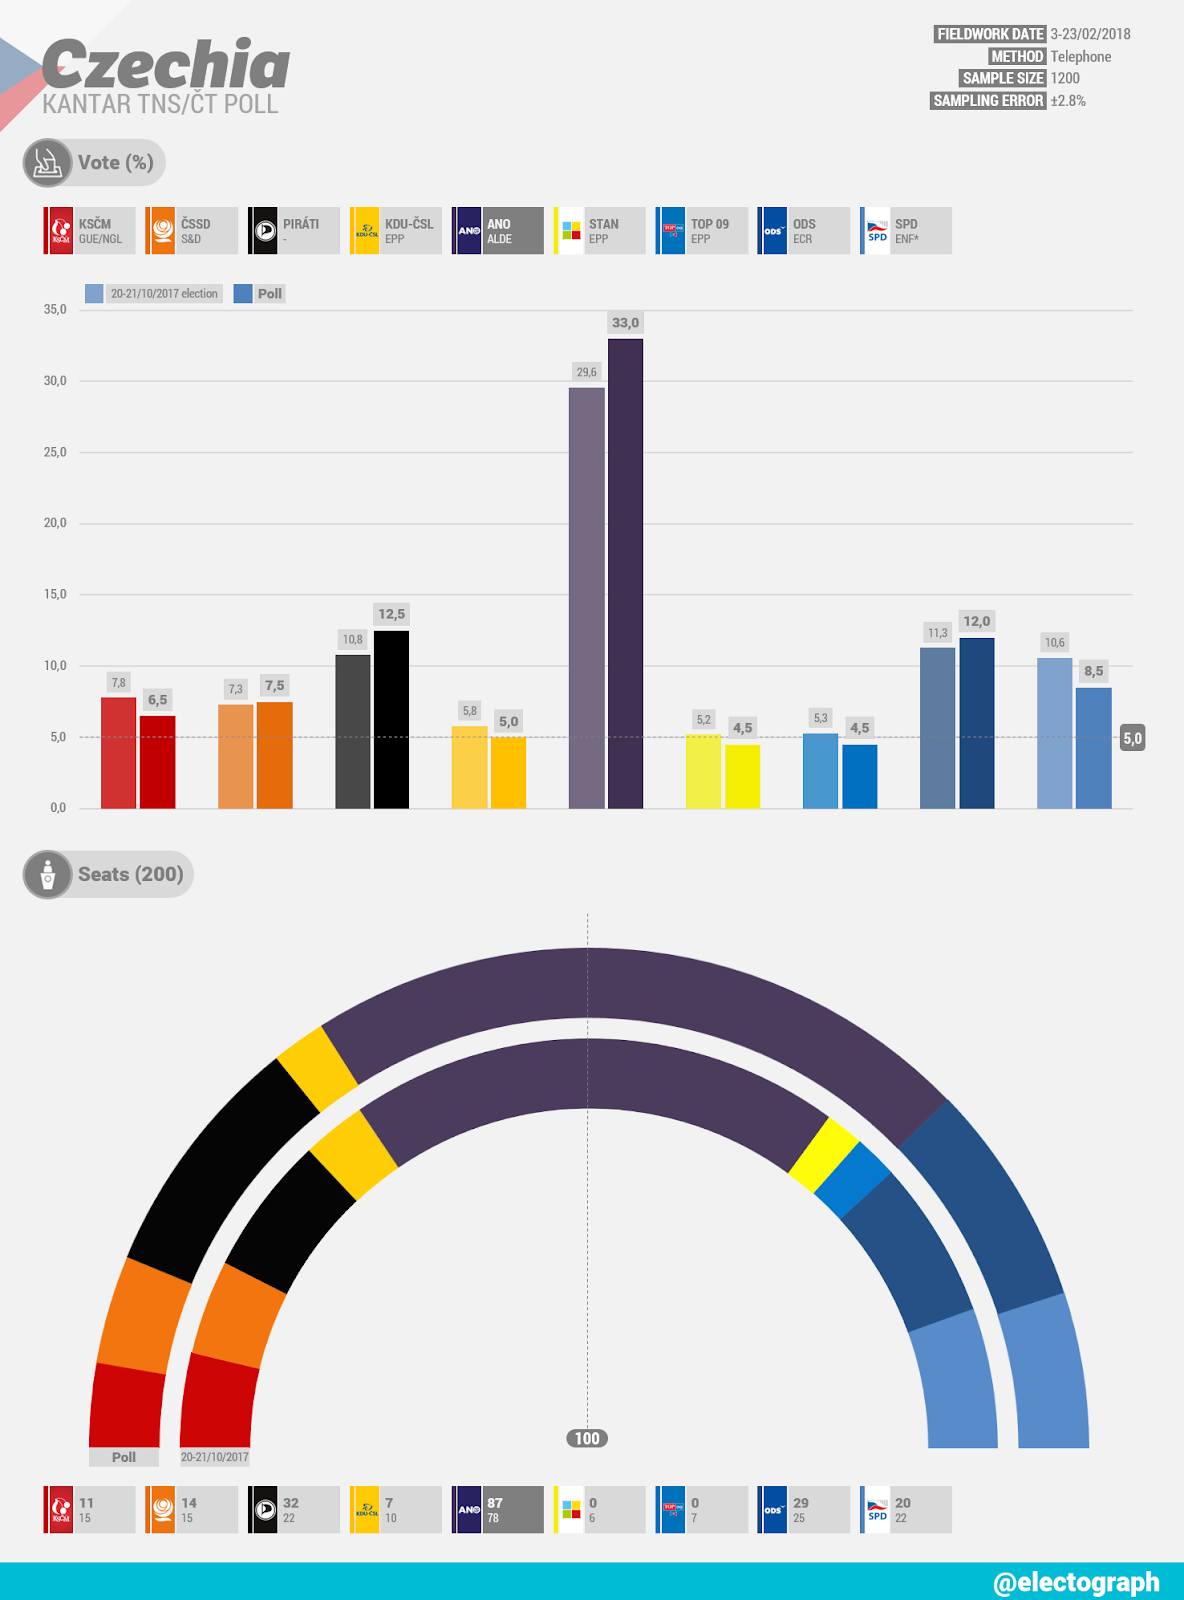 CZECHIA Kantar TNS poll chart for ČT, February 2018